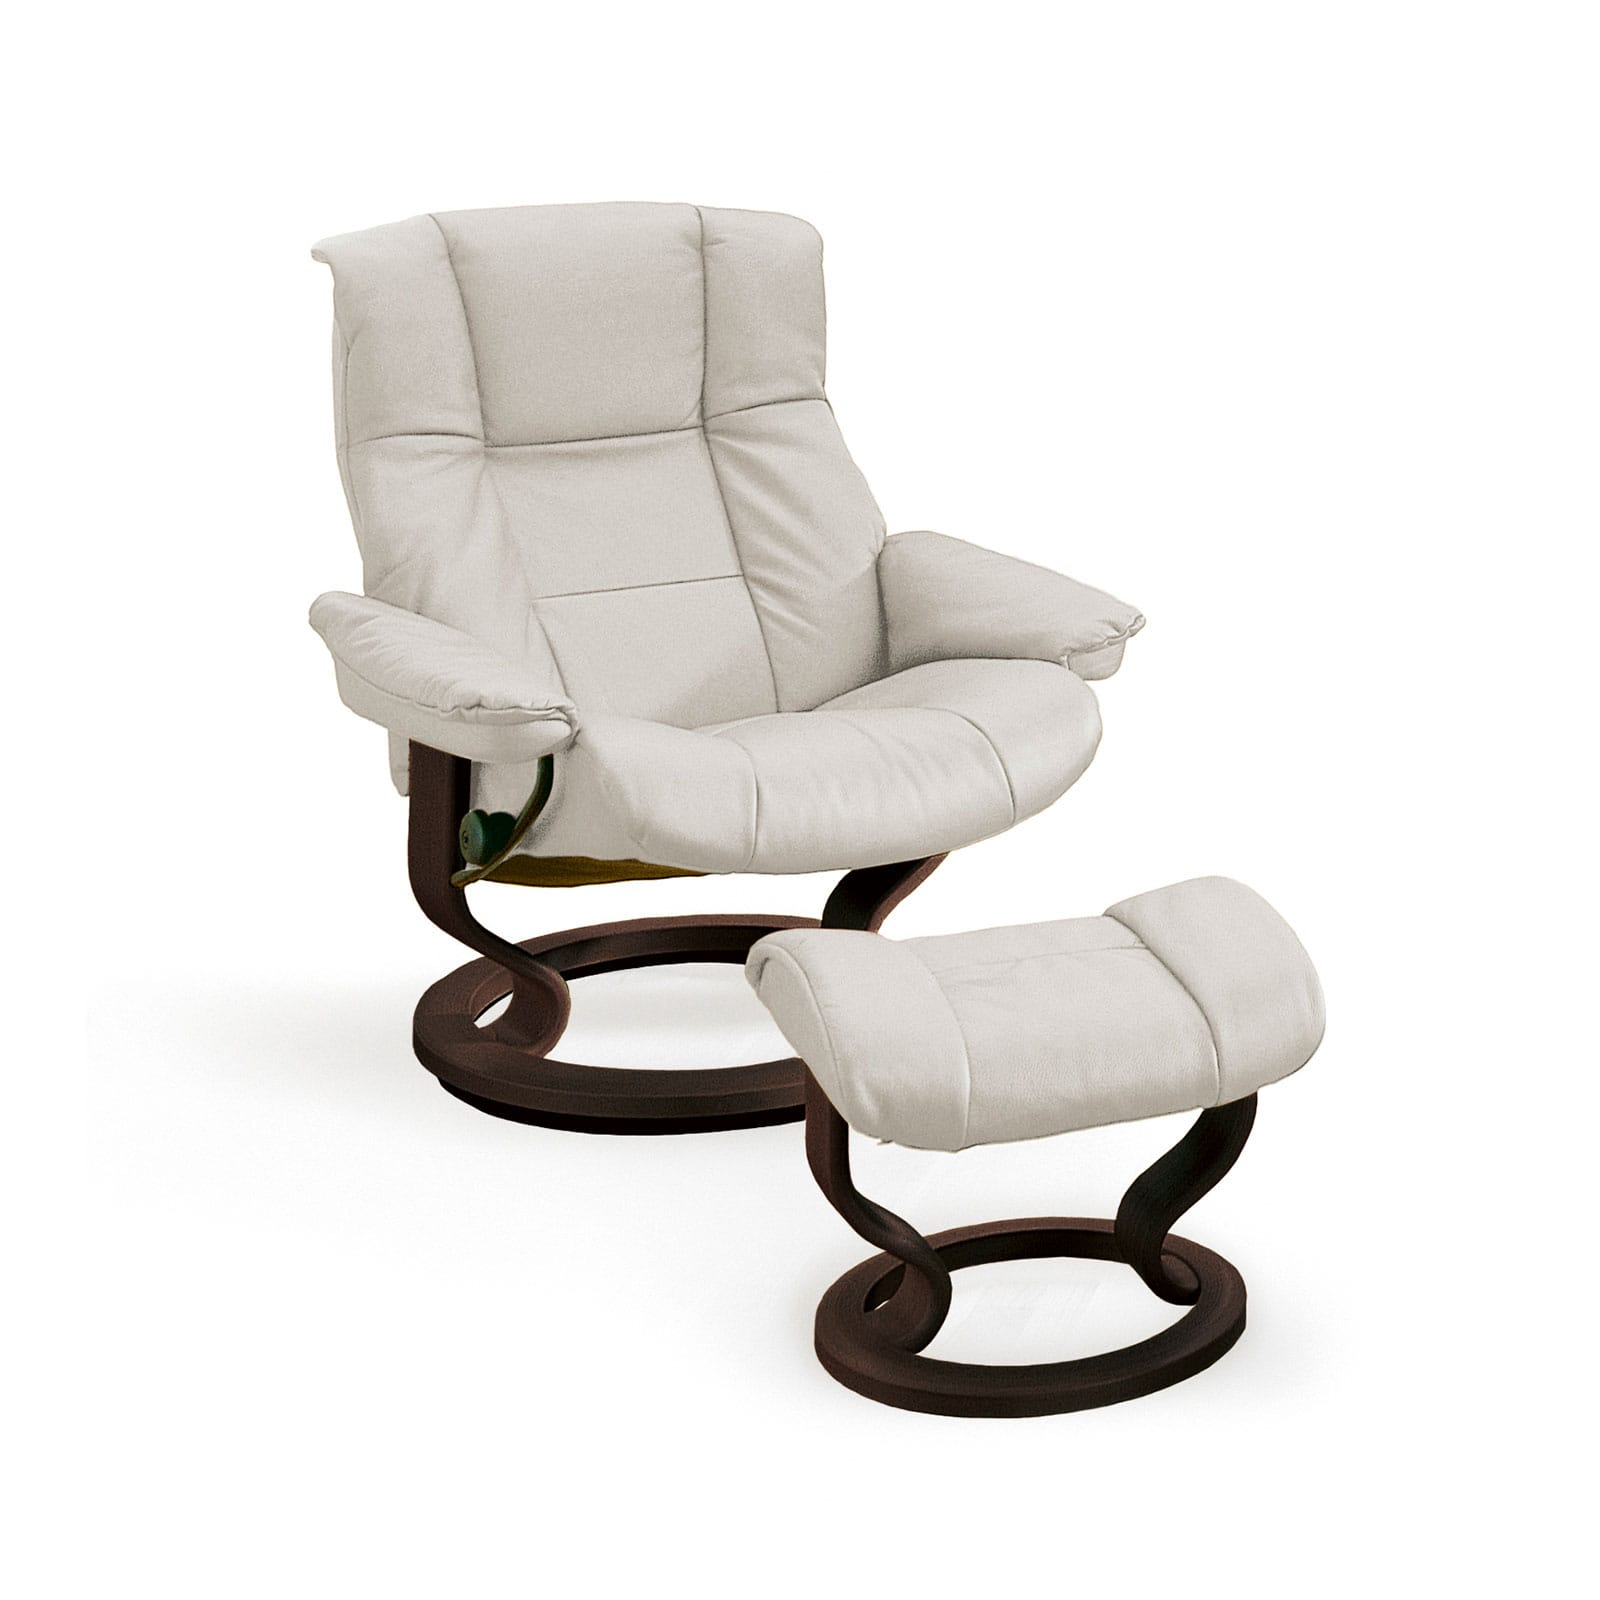 Stressless-sessel Stressless Mayfair Paloma Light Grey Classic Wenge Mit Hocker